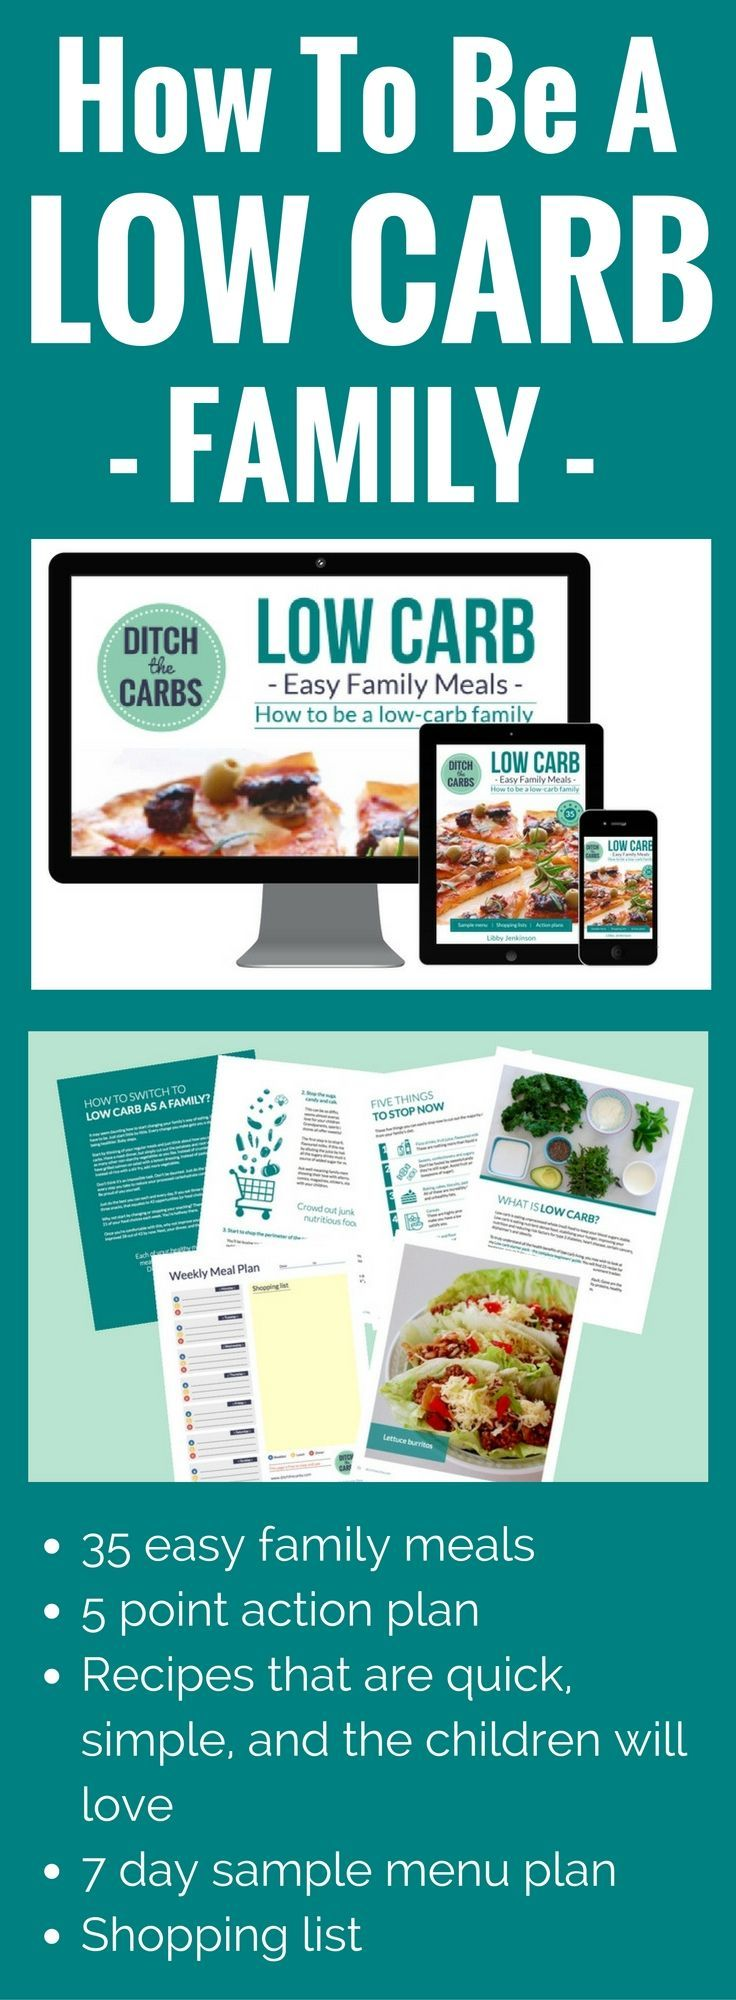 Best 25+ Low carb shopping list ideas on Pinterest | Carb ...